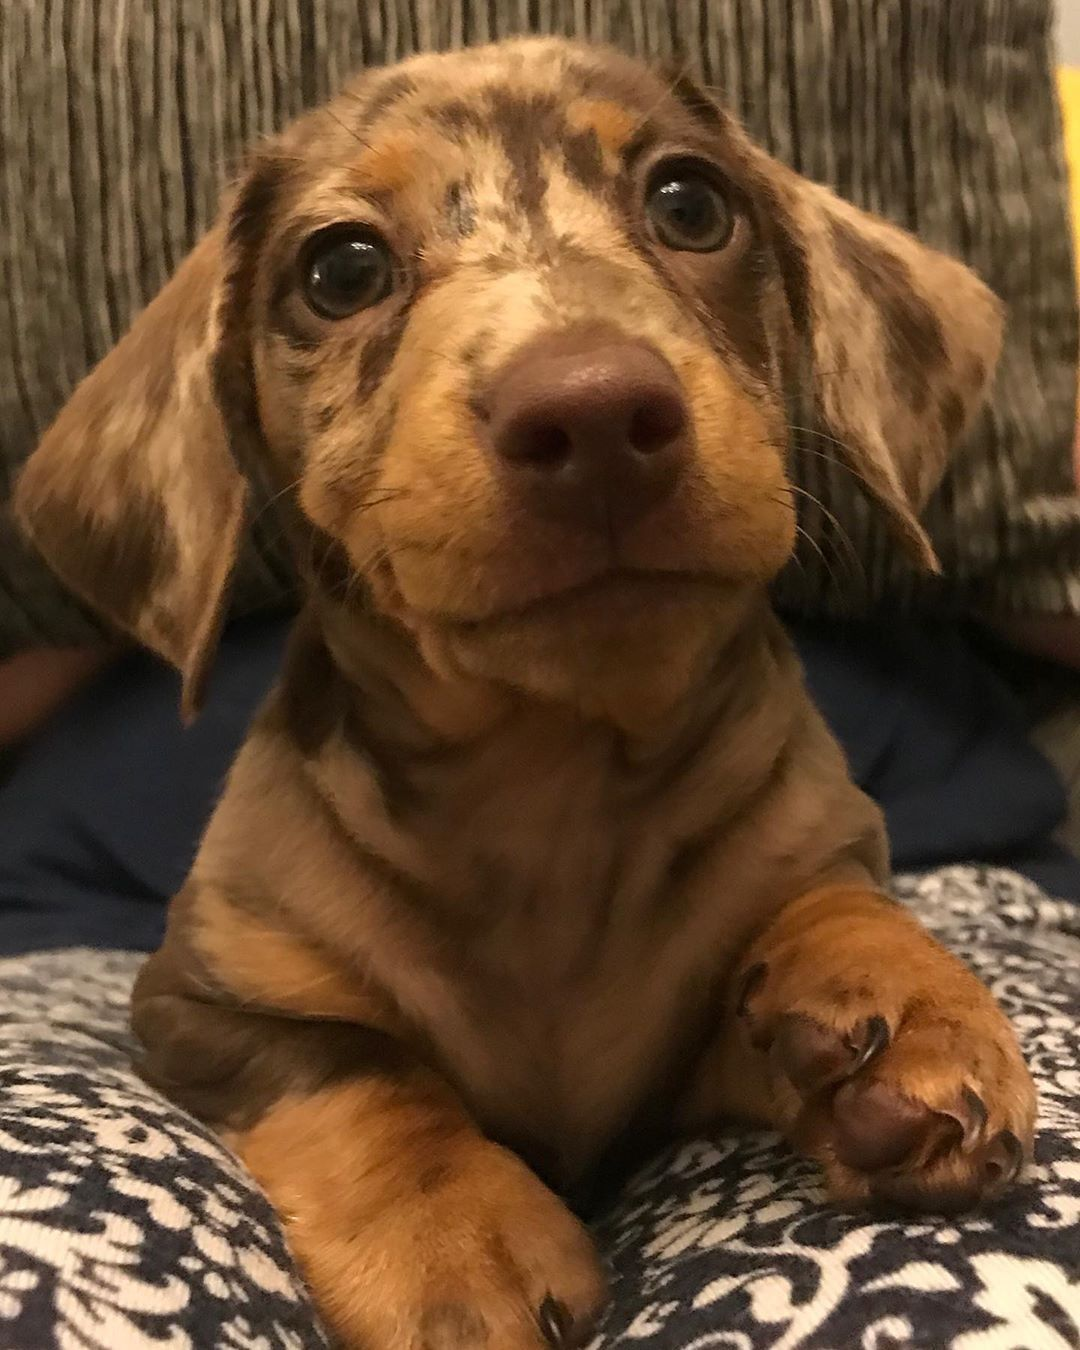 Pin By Sofia Winchester On Cute Dachshund Puppies Cute Puppies